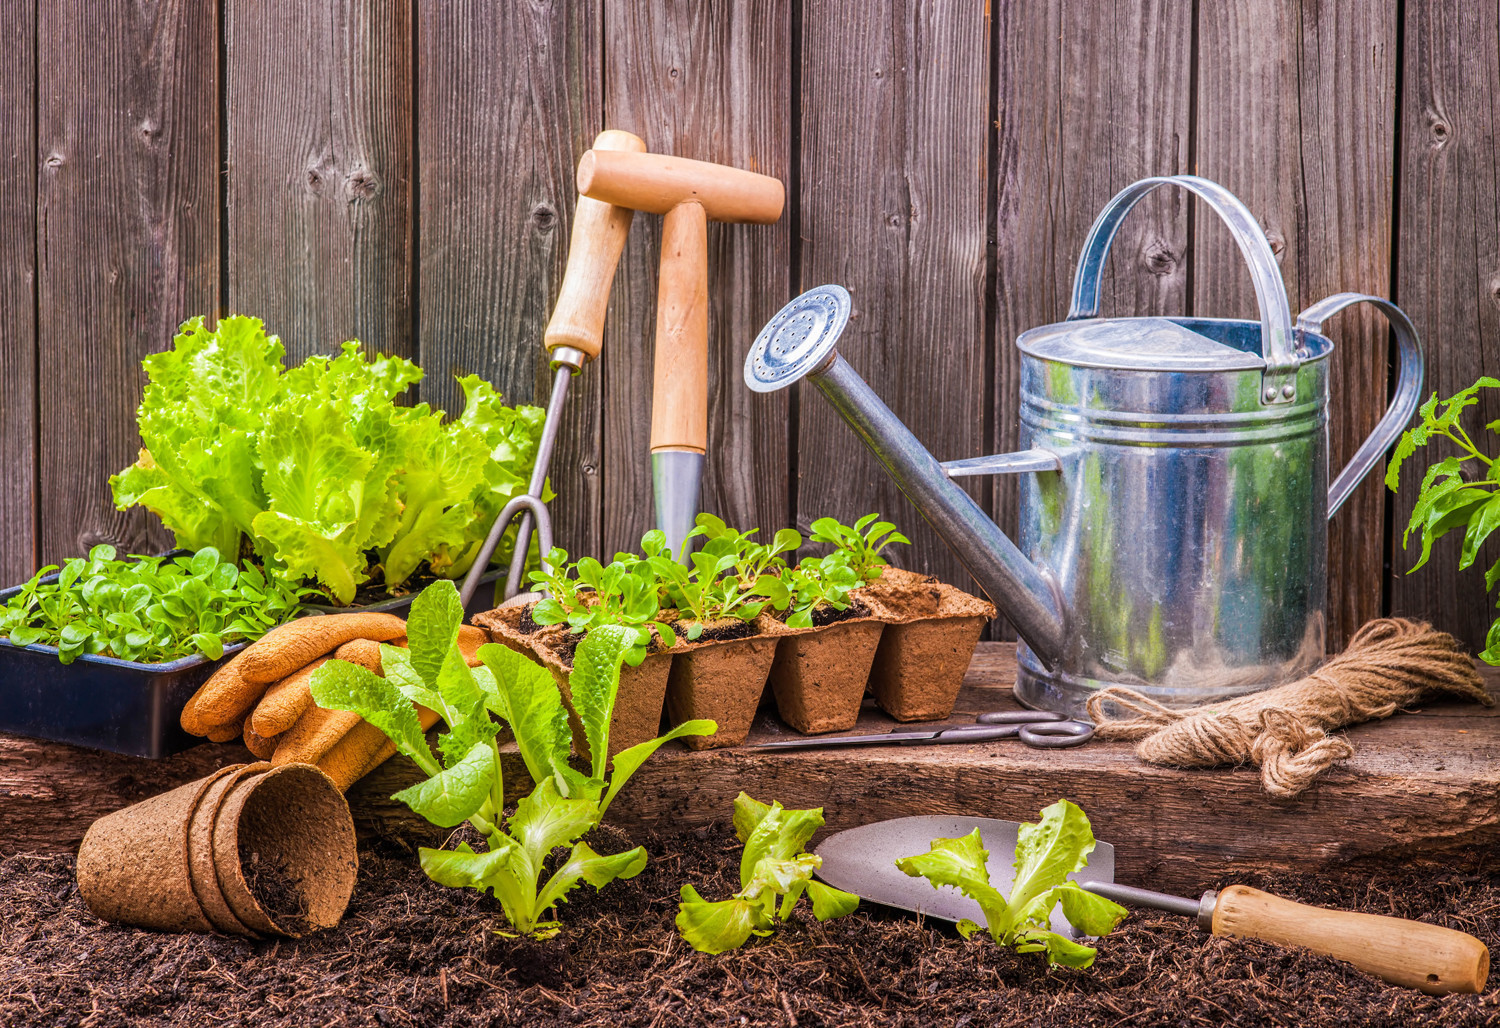 Garden tips did you know pomerado news for Home and garden equipment